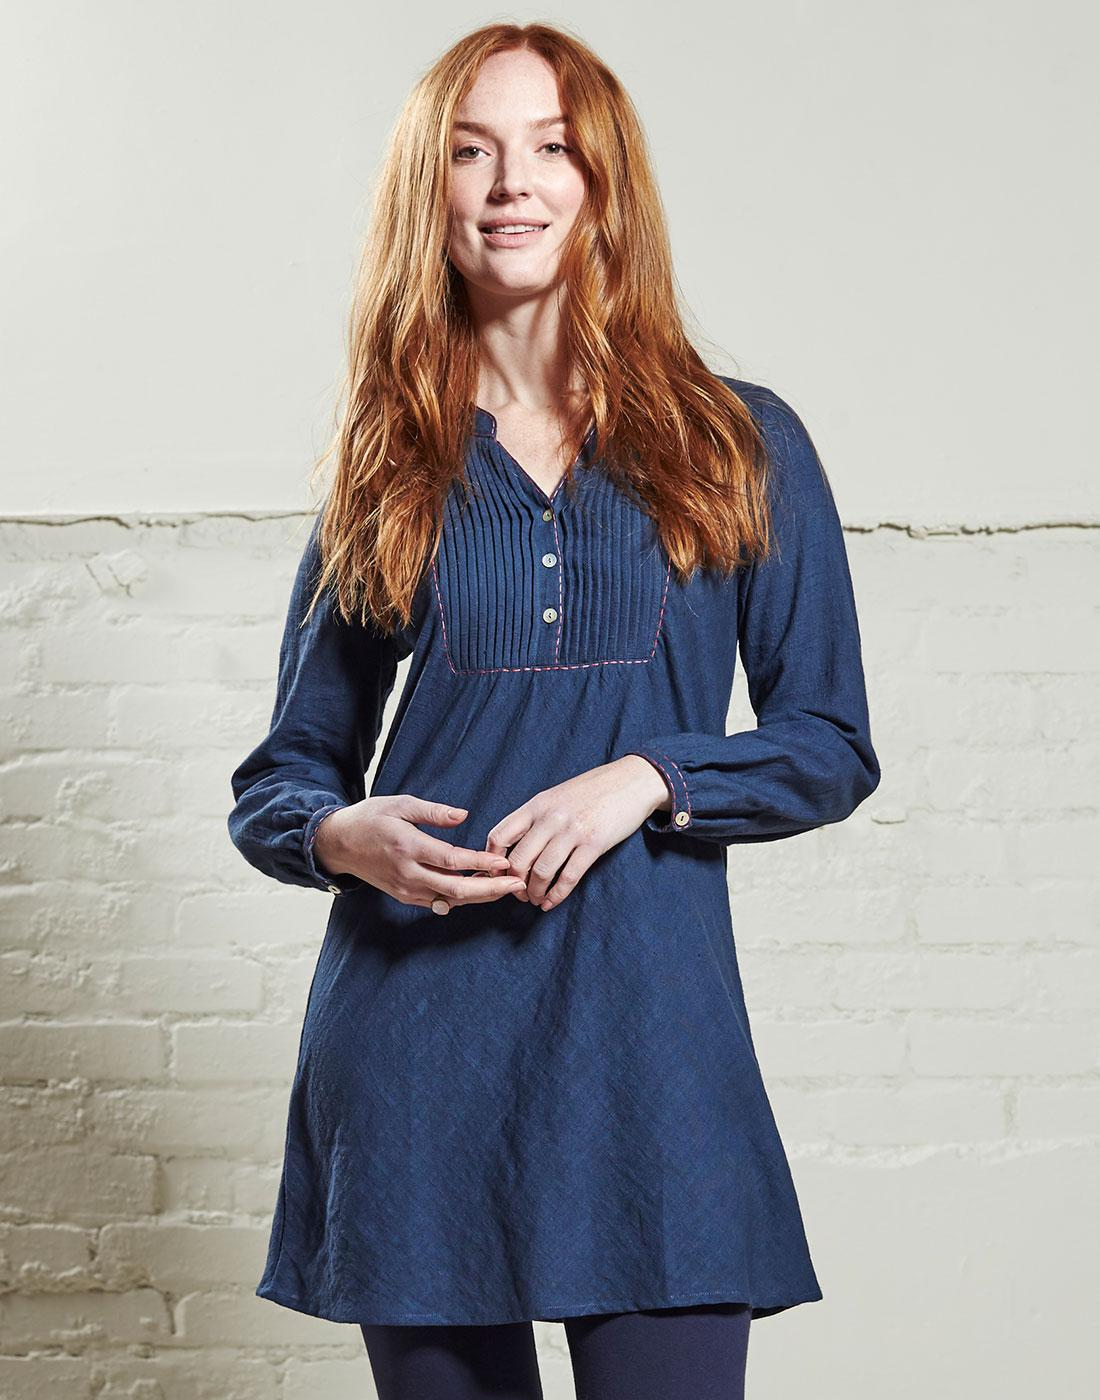 NOMADS Retro 70s Denim Style Pintuck Tunic Shirt